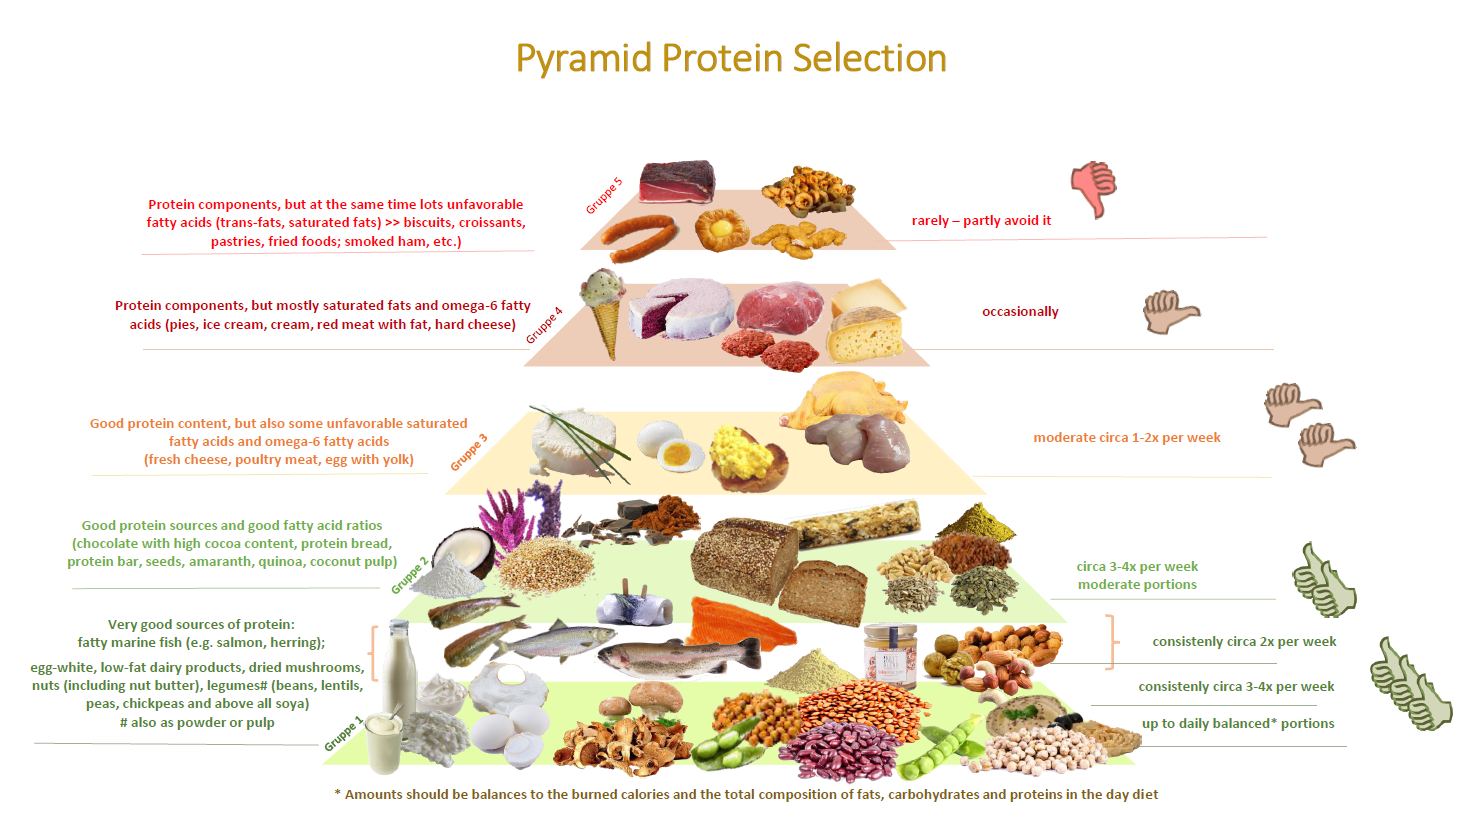 pyramid protein selection